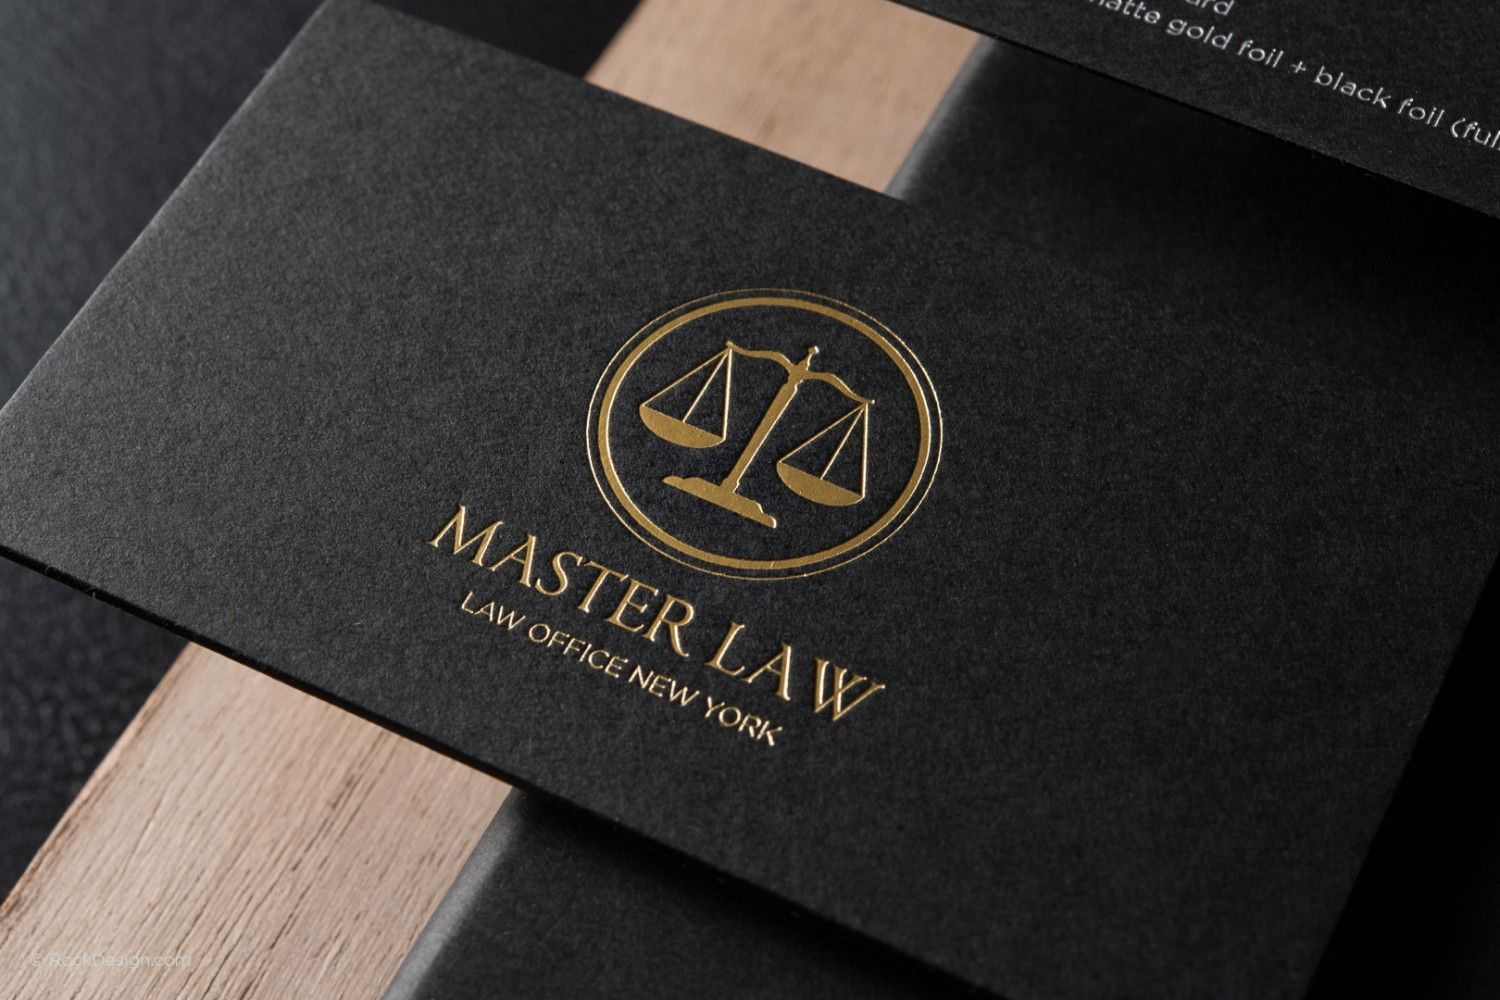 Free Lawyer Business Card Template Rockdesign Lawyer